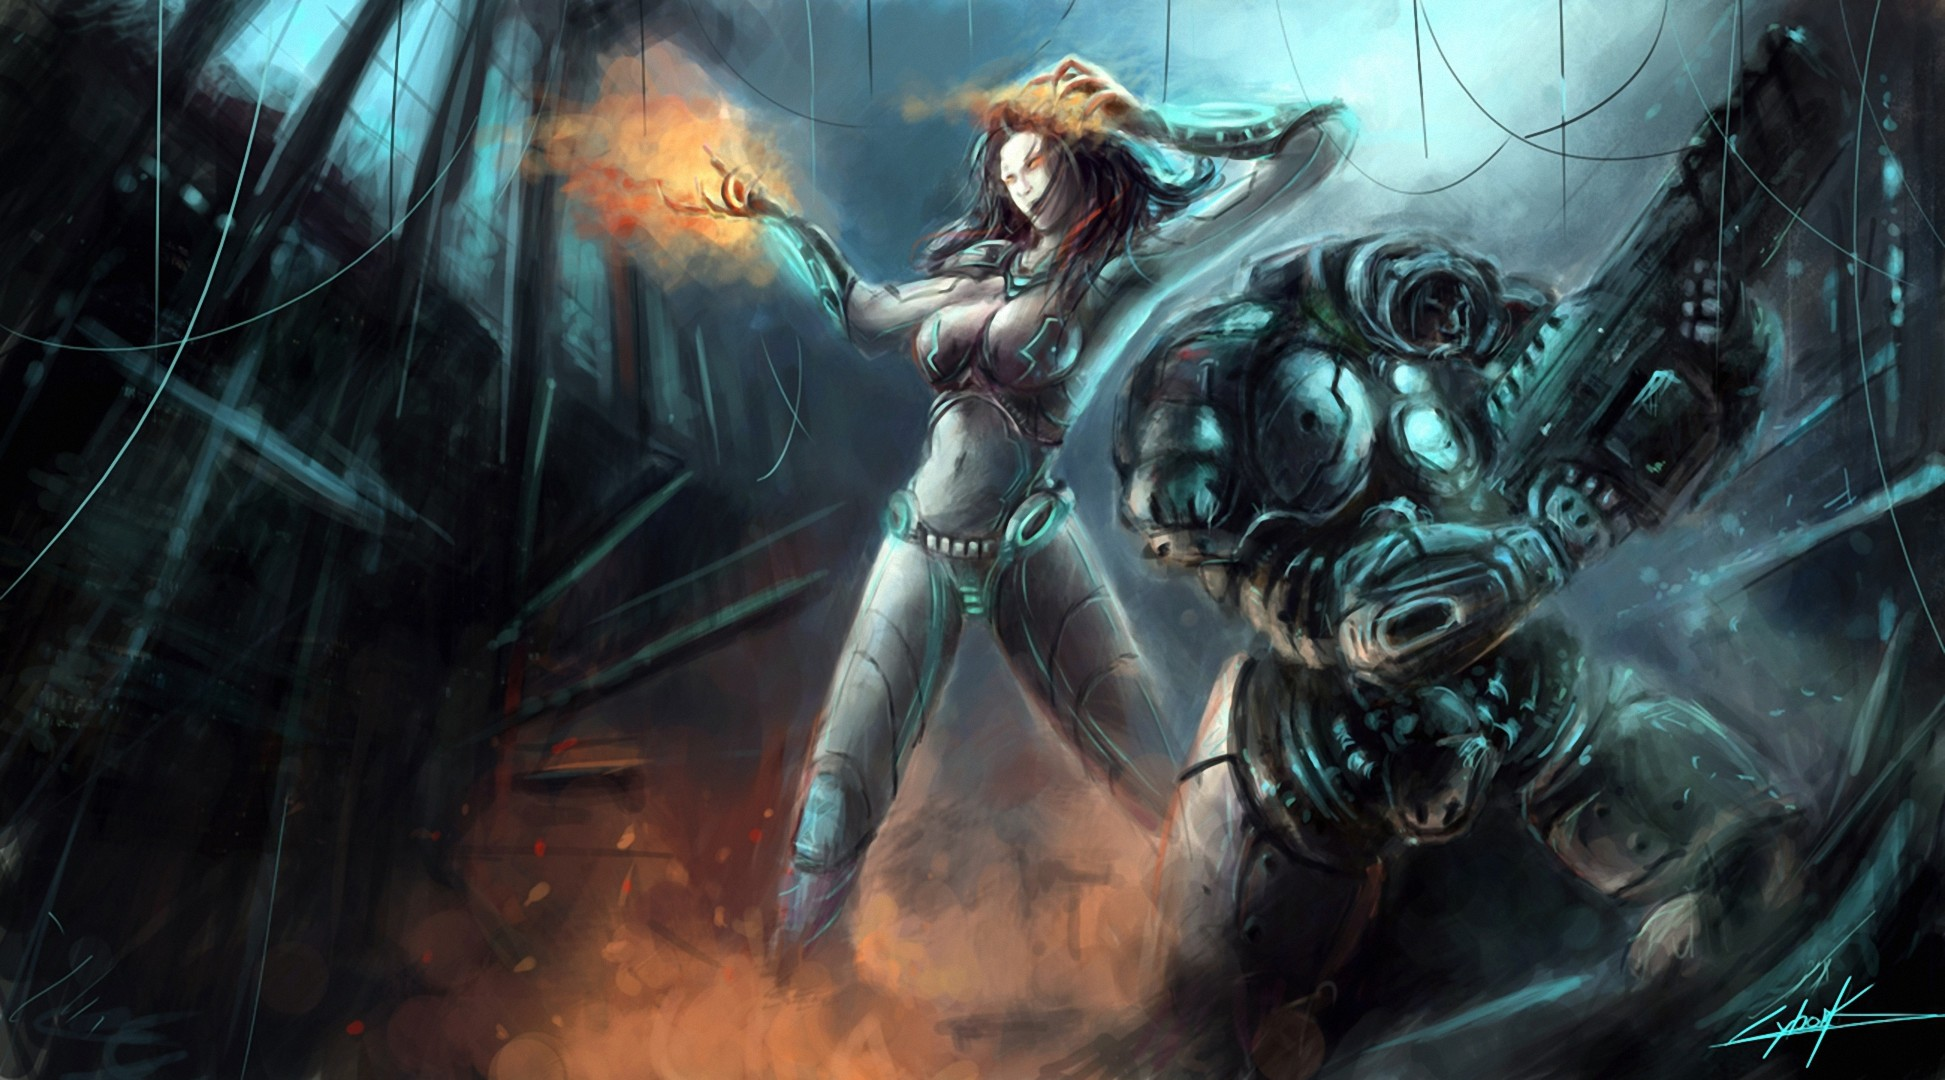 Starcraft 2 Hd Wallpapers 83 Images